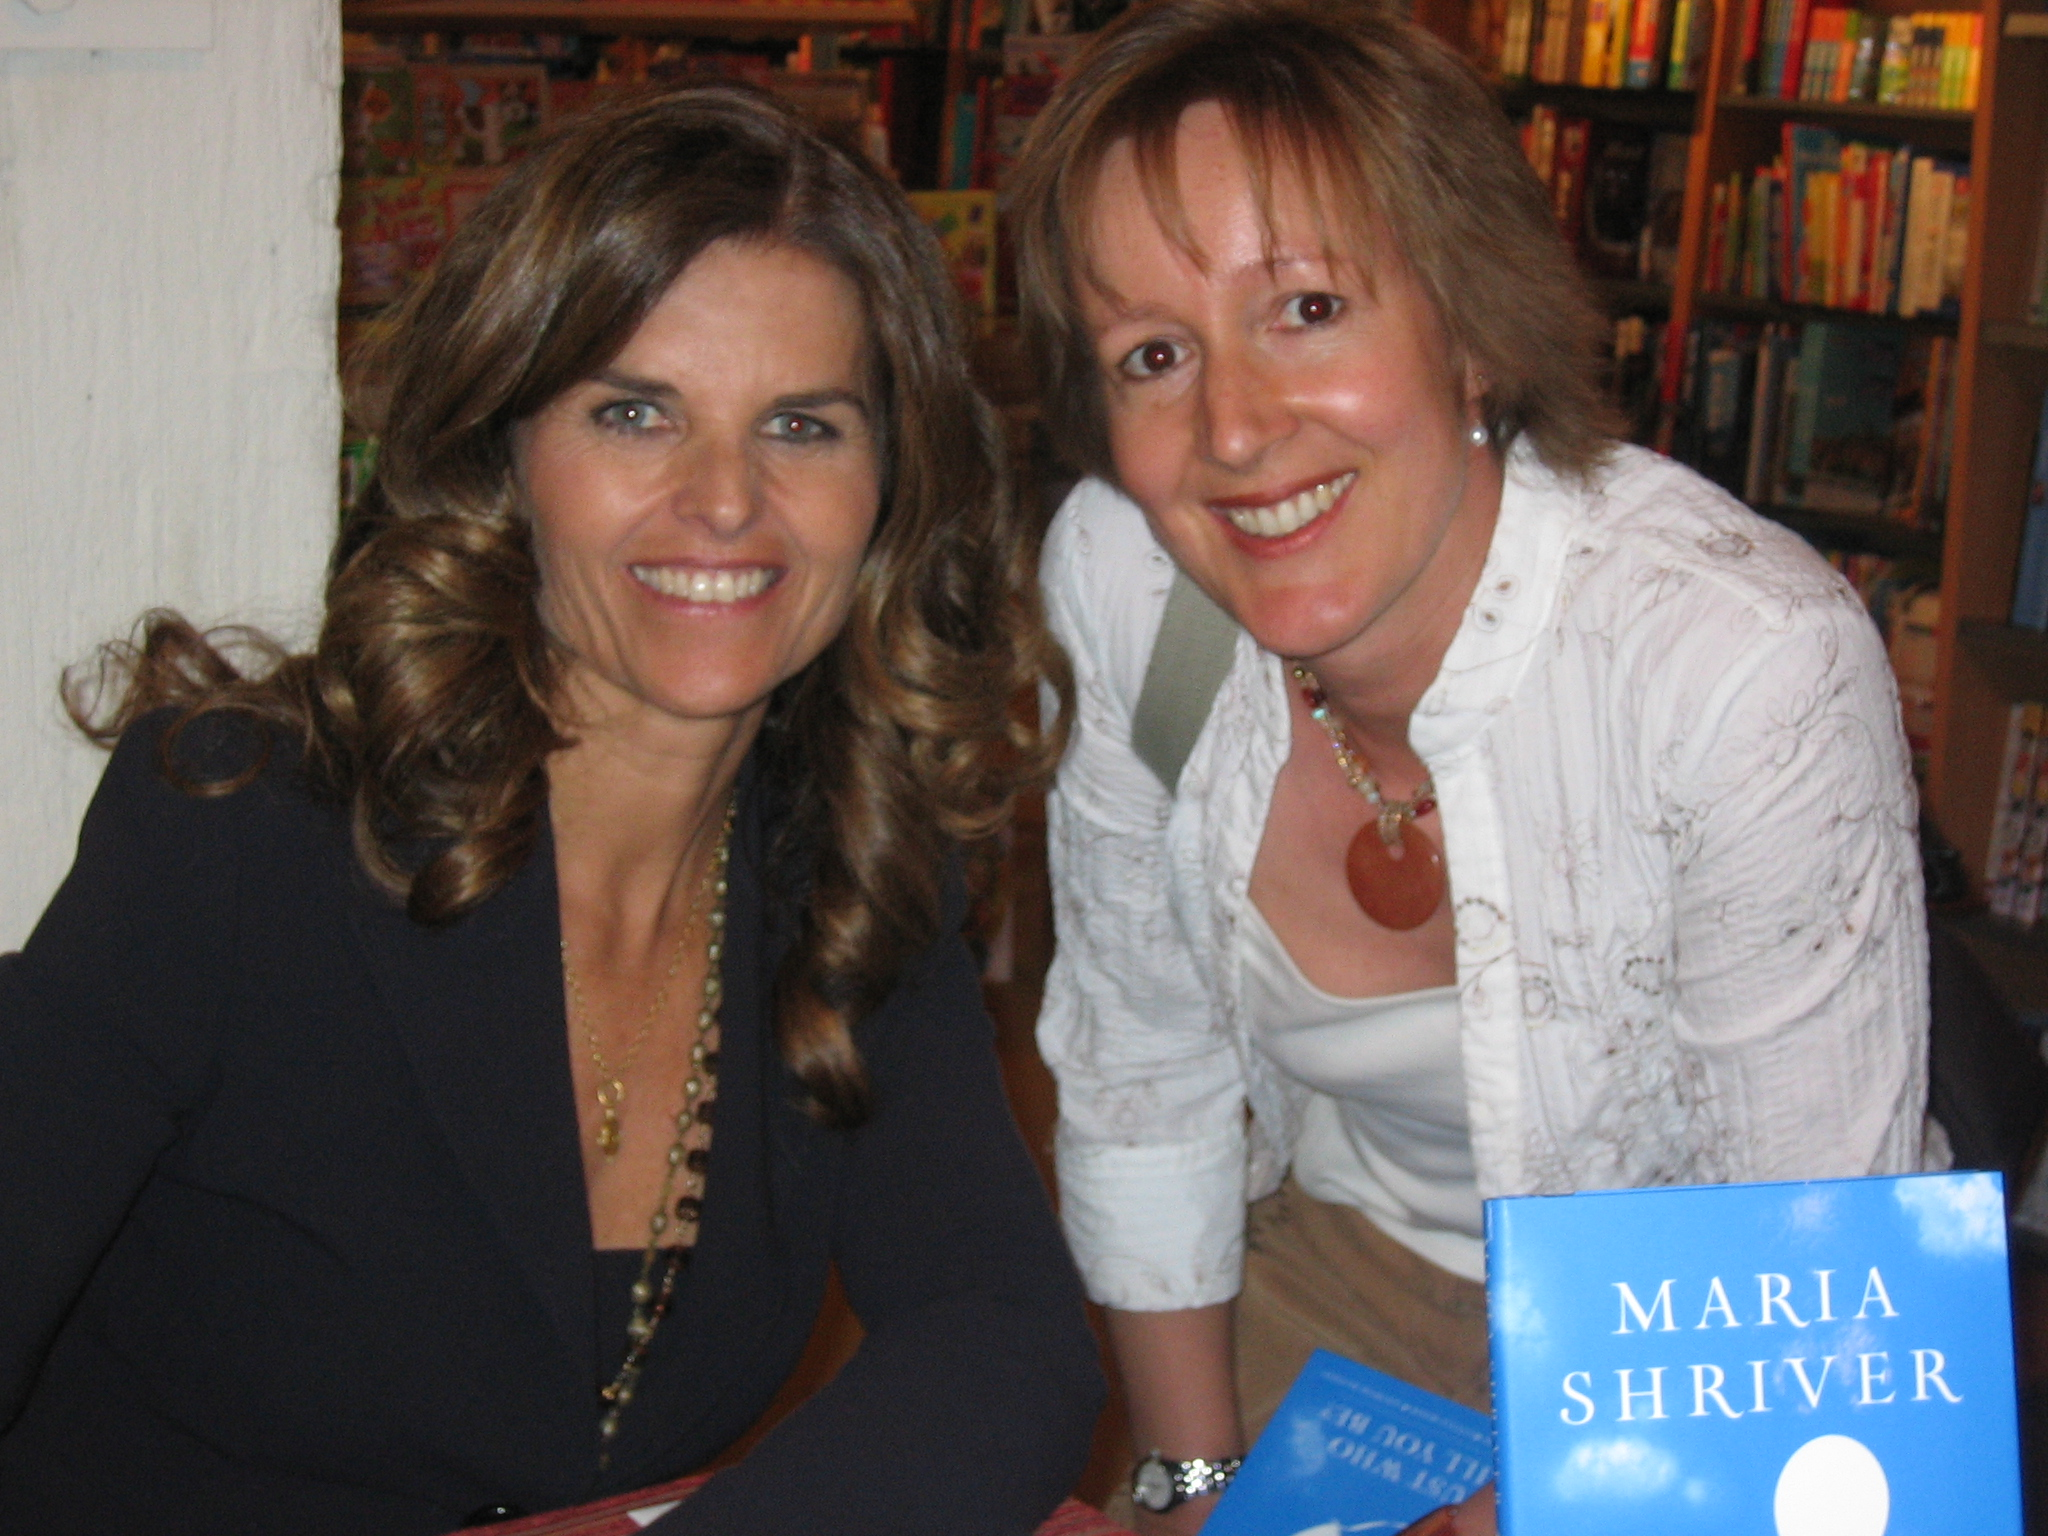 Maria Shriver with siliconmom in Palo Alto CA